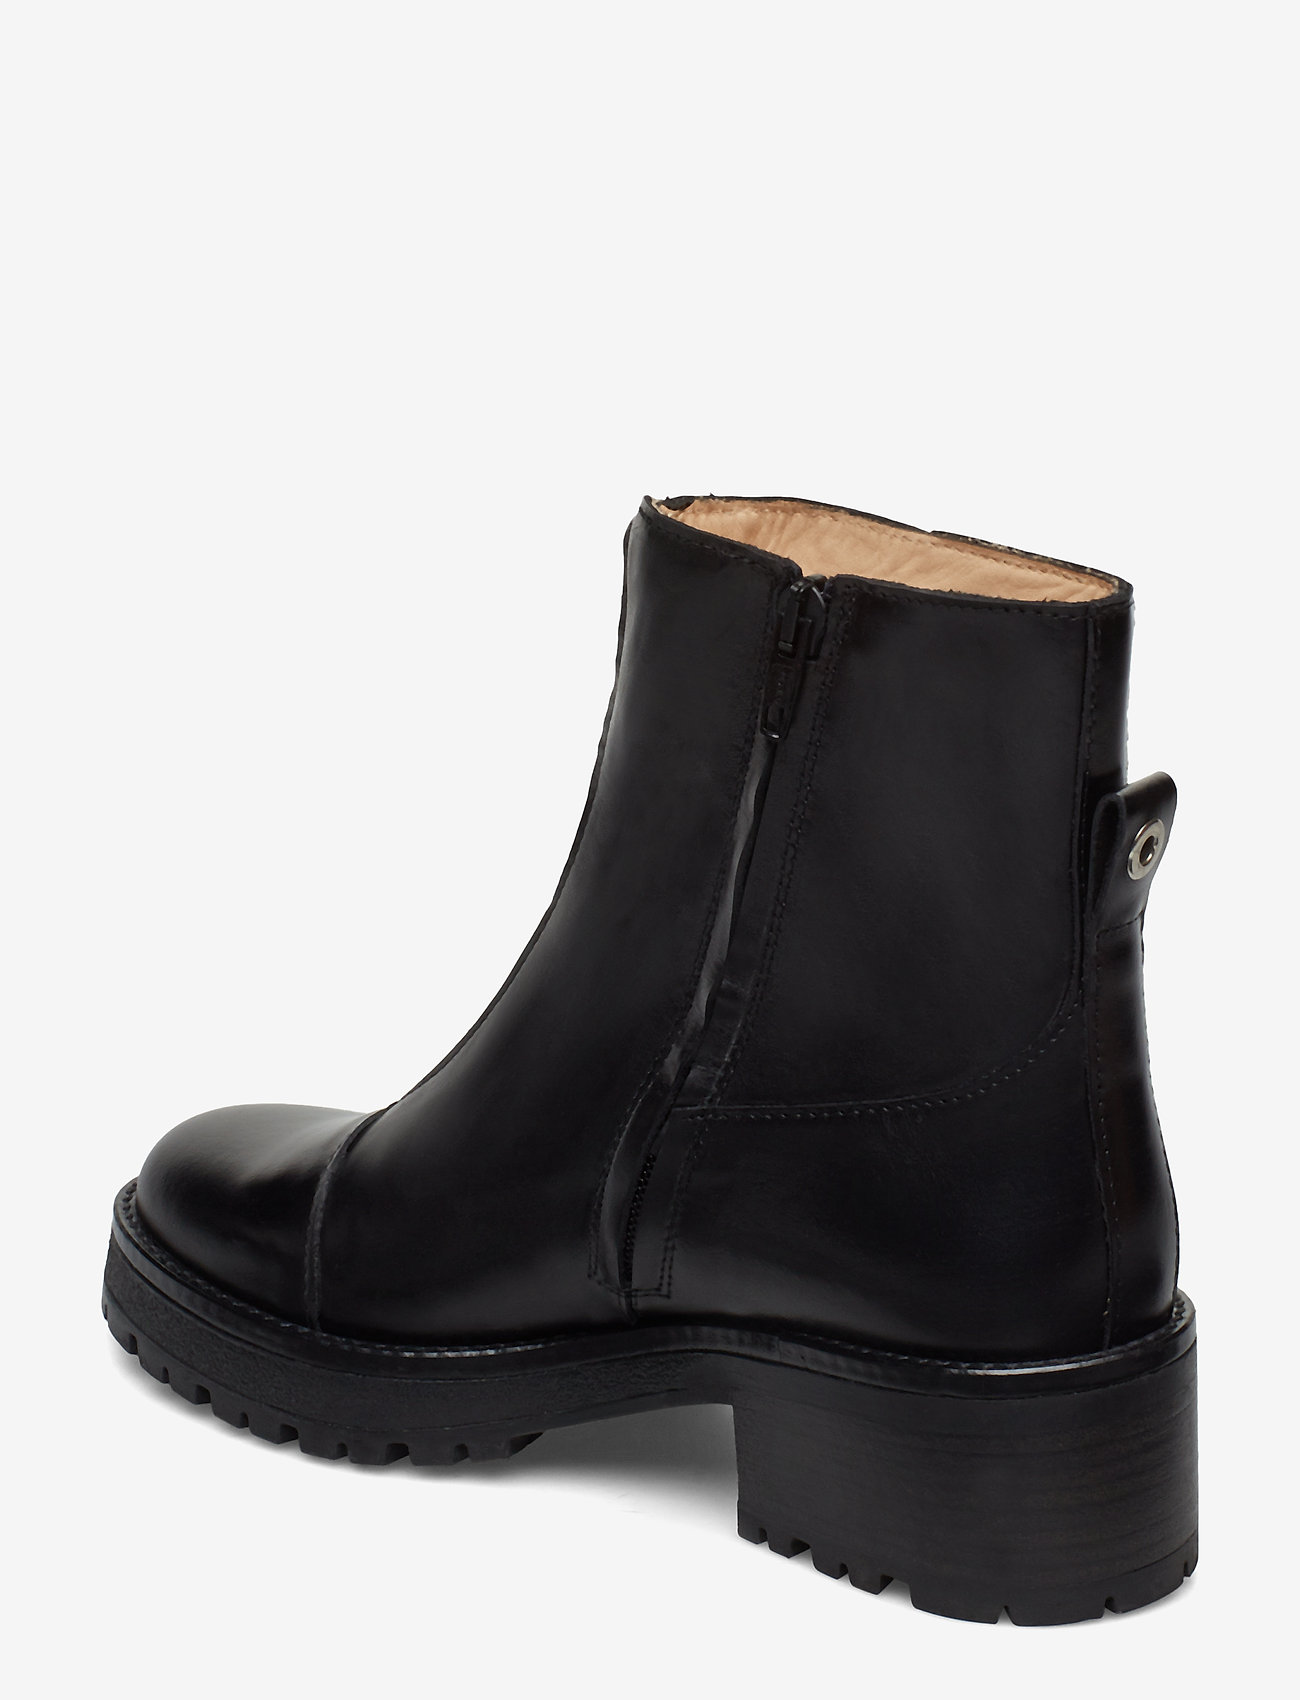 Booties - Flat - With Zipper (1835 Black) (250 €) - ANGULUS hx5wT